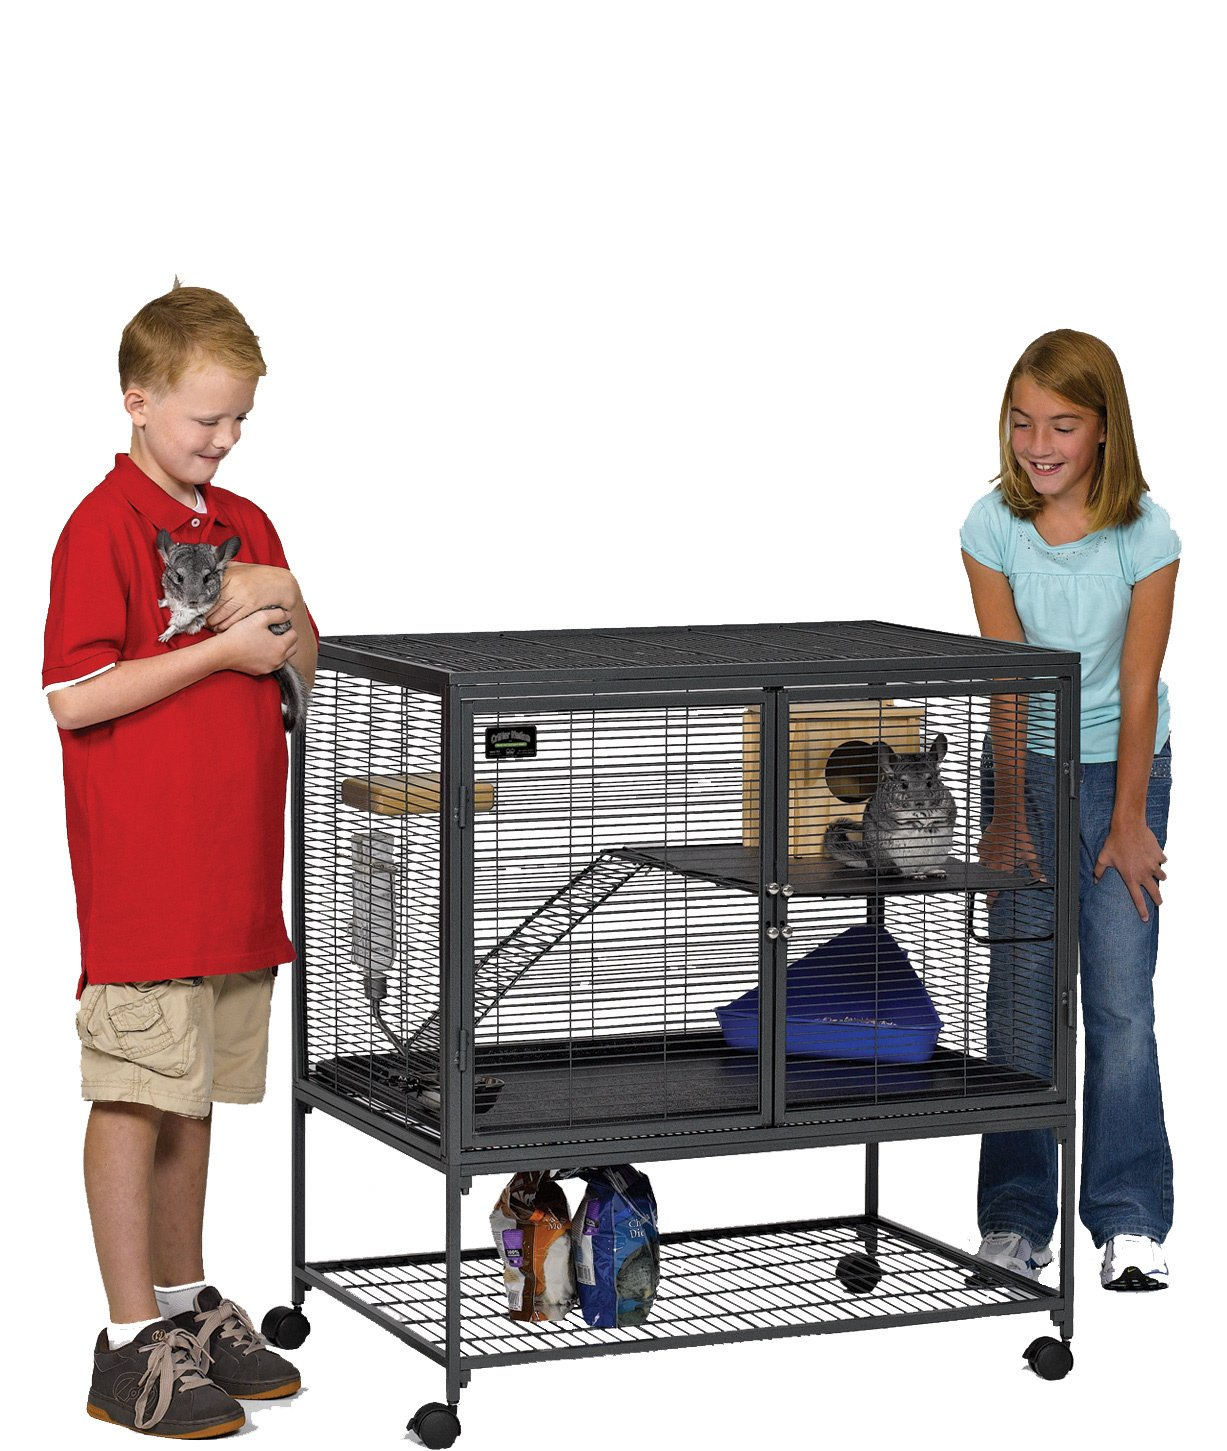 MidWest Deluxe Critter Nation Single Unit Small Animal Cage (Model 161) Includes 1 Leak-Proof Pans, 1 Shelf, 1 Ramps w/ Ramp Cover & 4 locking Wheel Casters, Measures 36''L x 25''W x 38.5''H Inches, Ideal for Dagus, Rats, Ferrets, Sugar Gliders